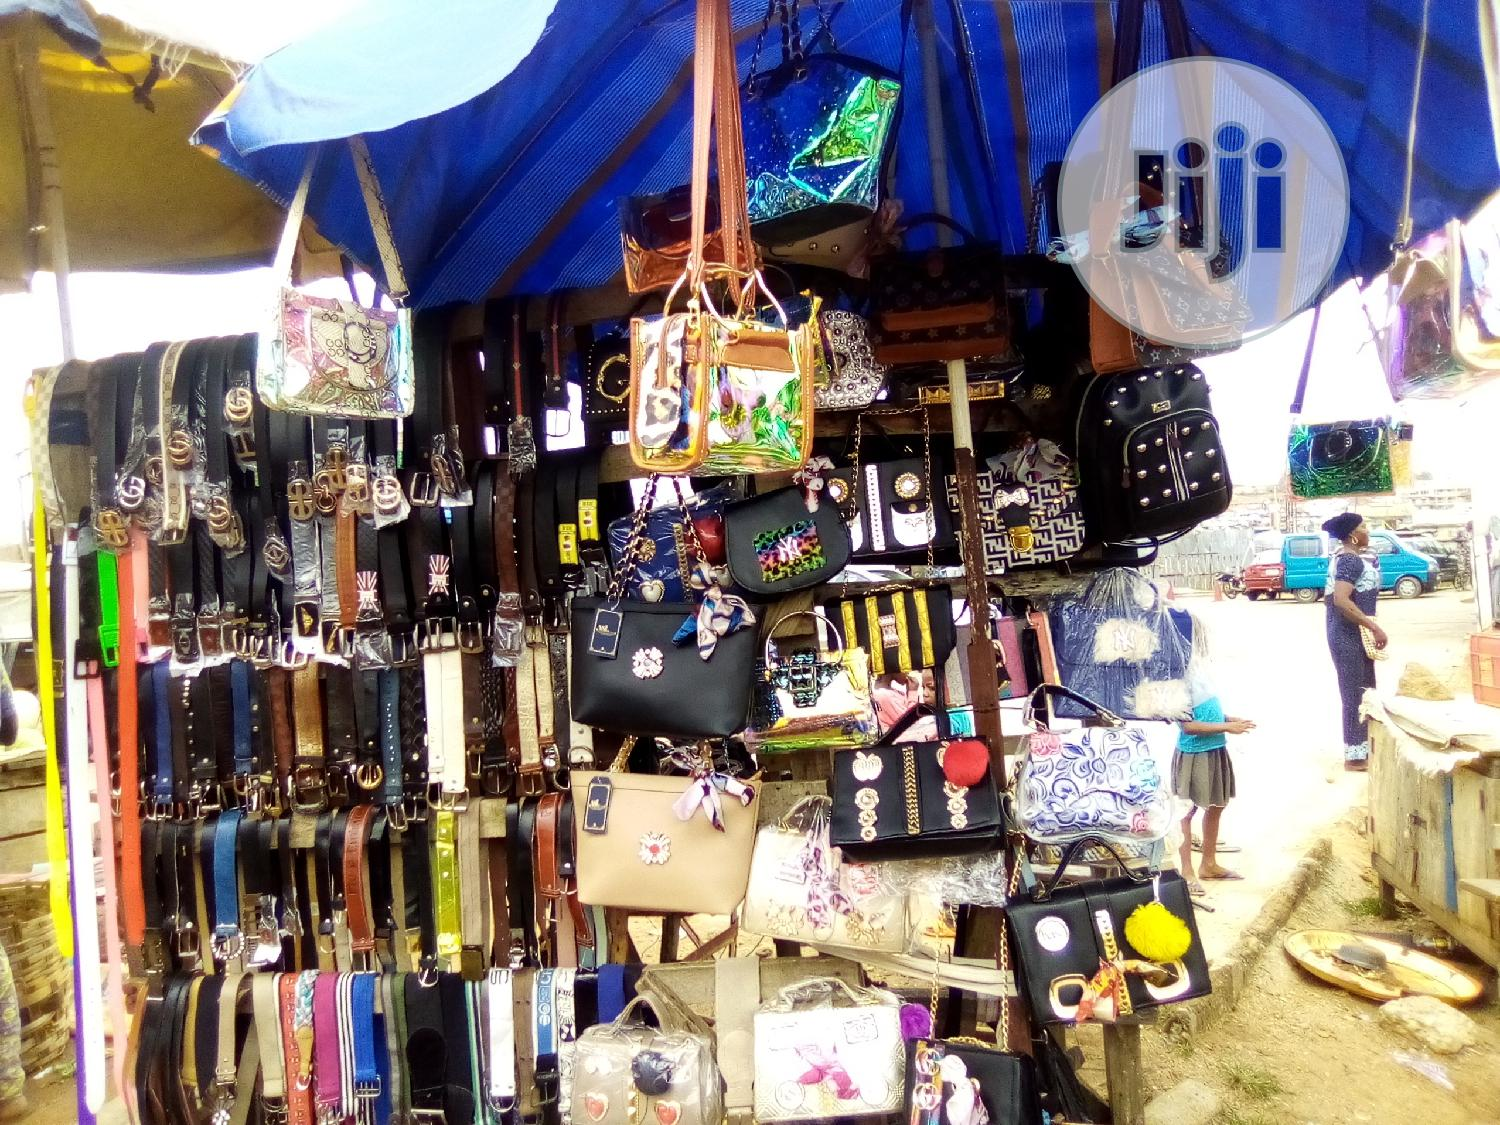 Lkj Bags and Belts Venture | Bags for sale in Osogbo, Osun State, Nigeria